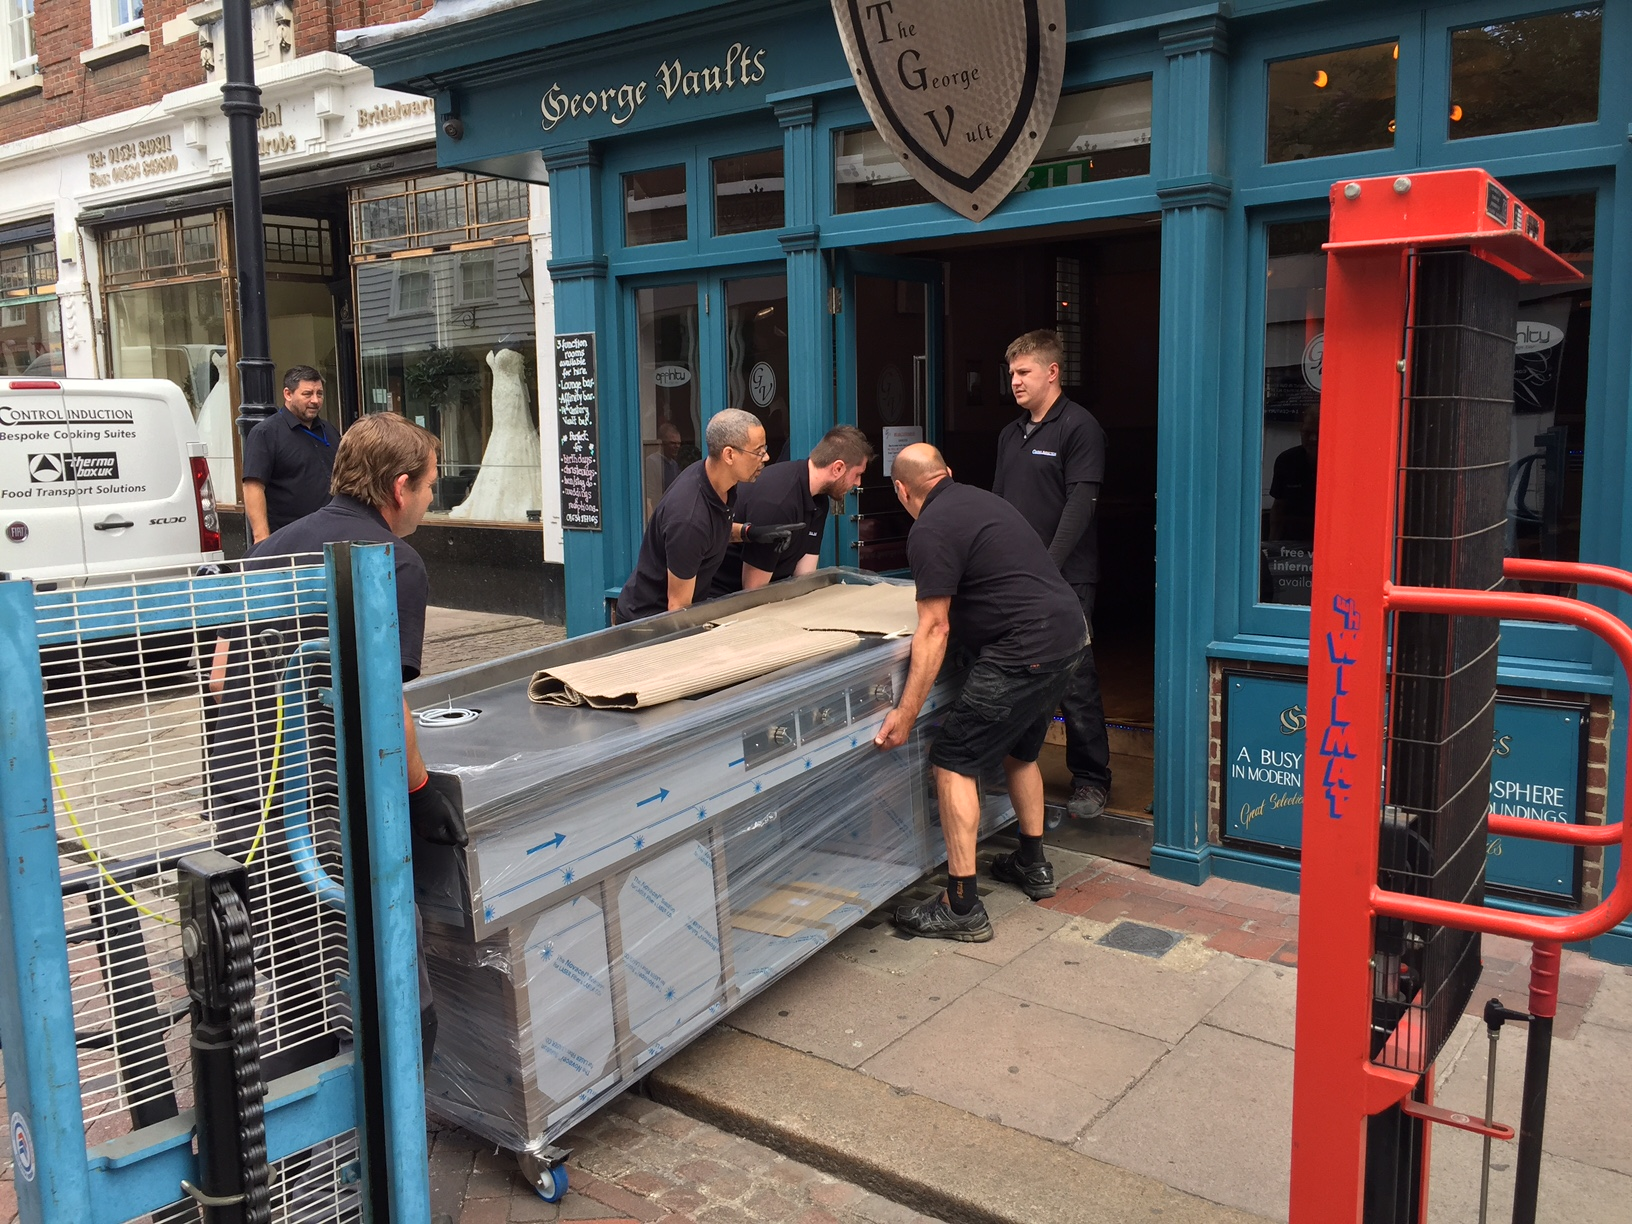 Induction cooker unloaded and being wheeled into the restaurant